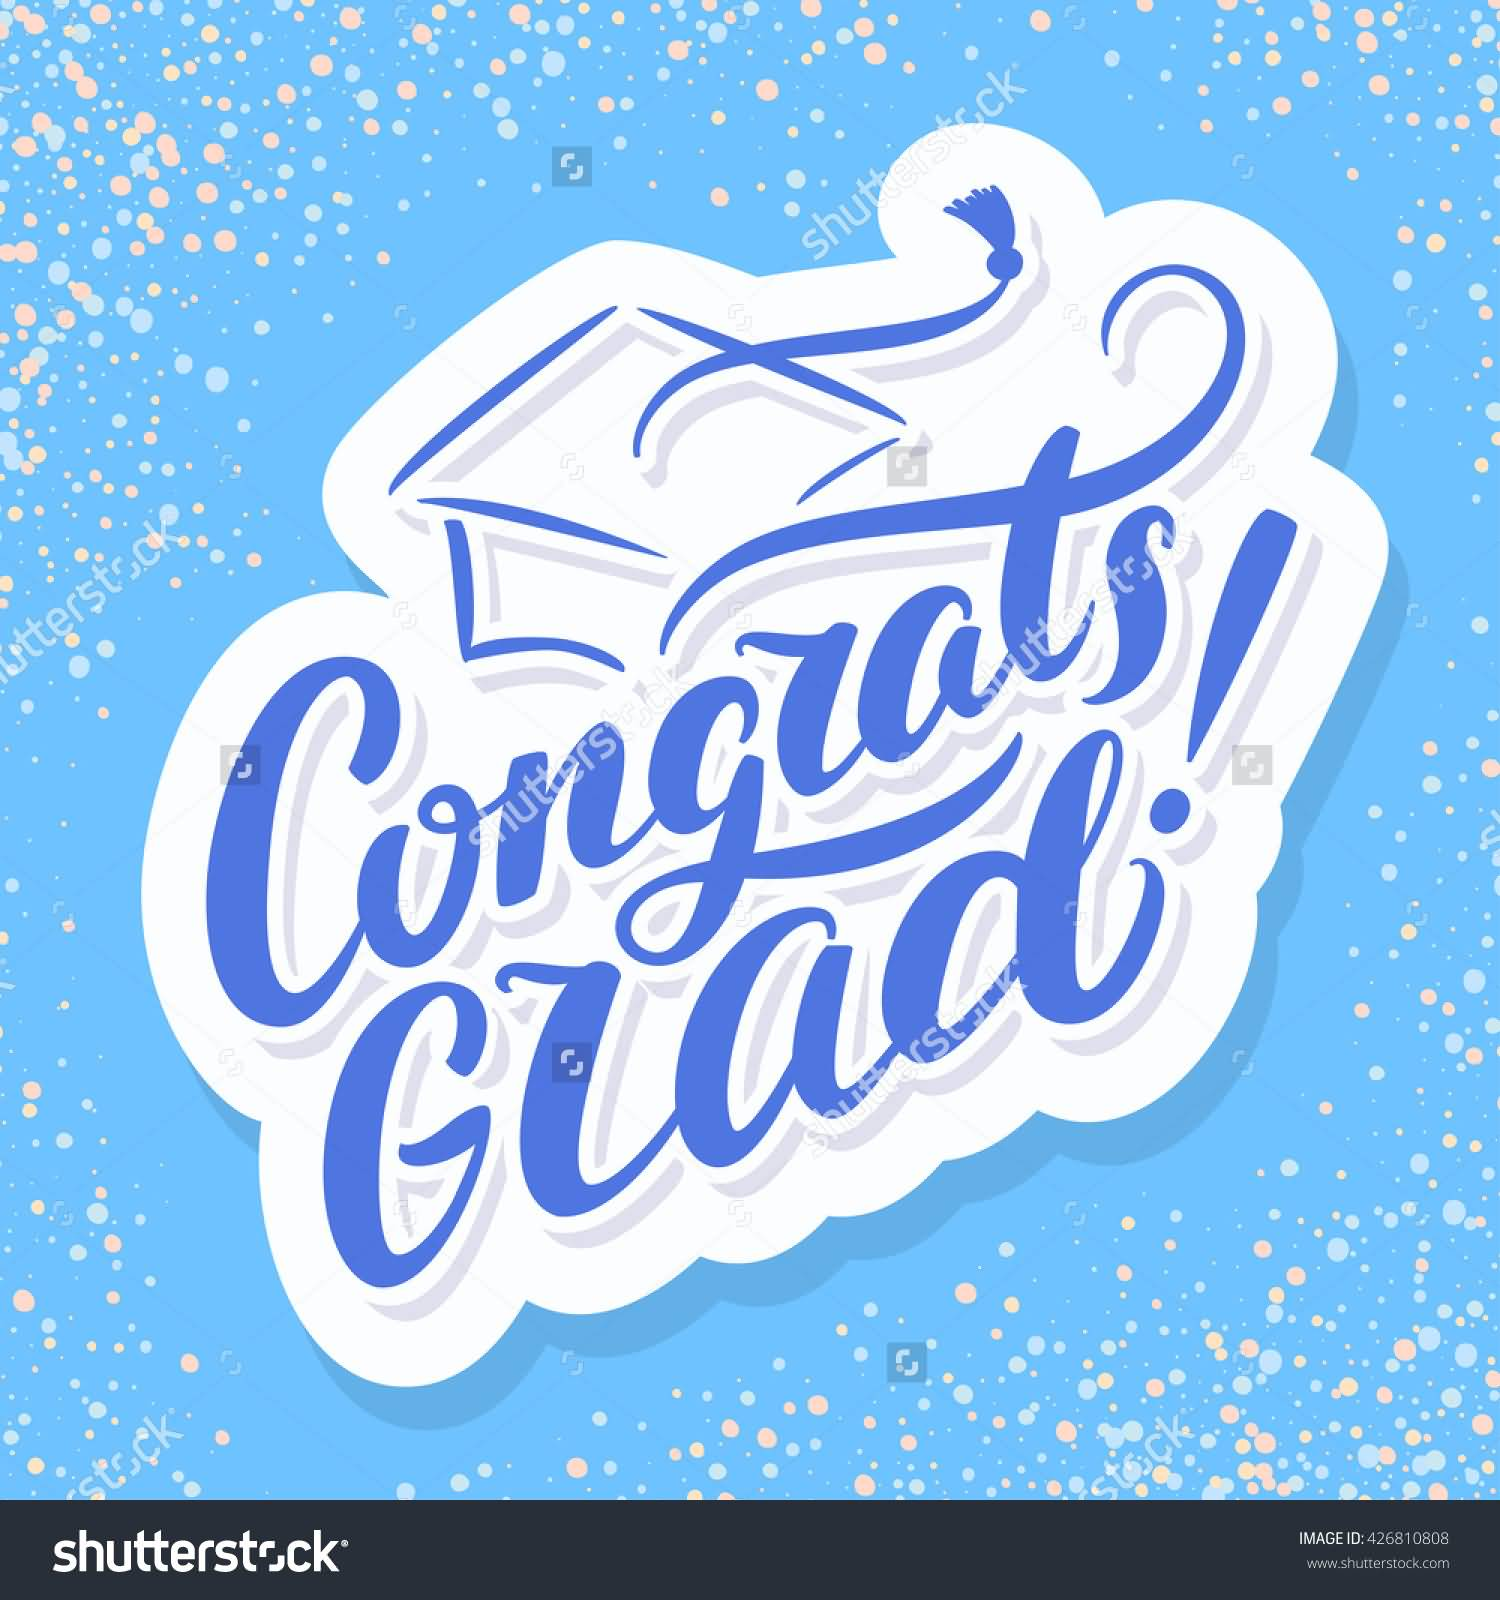 60 Best Congrats Greeting Pictures And Photos